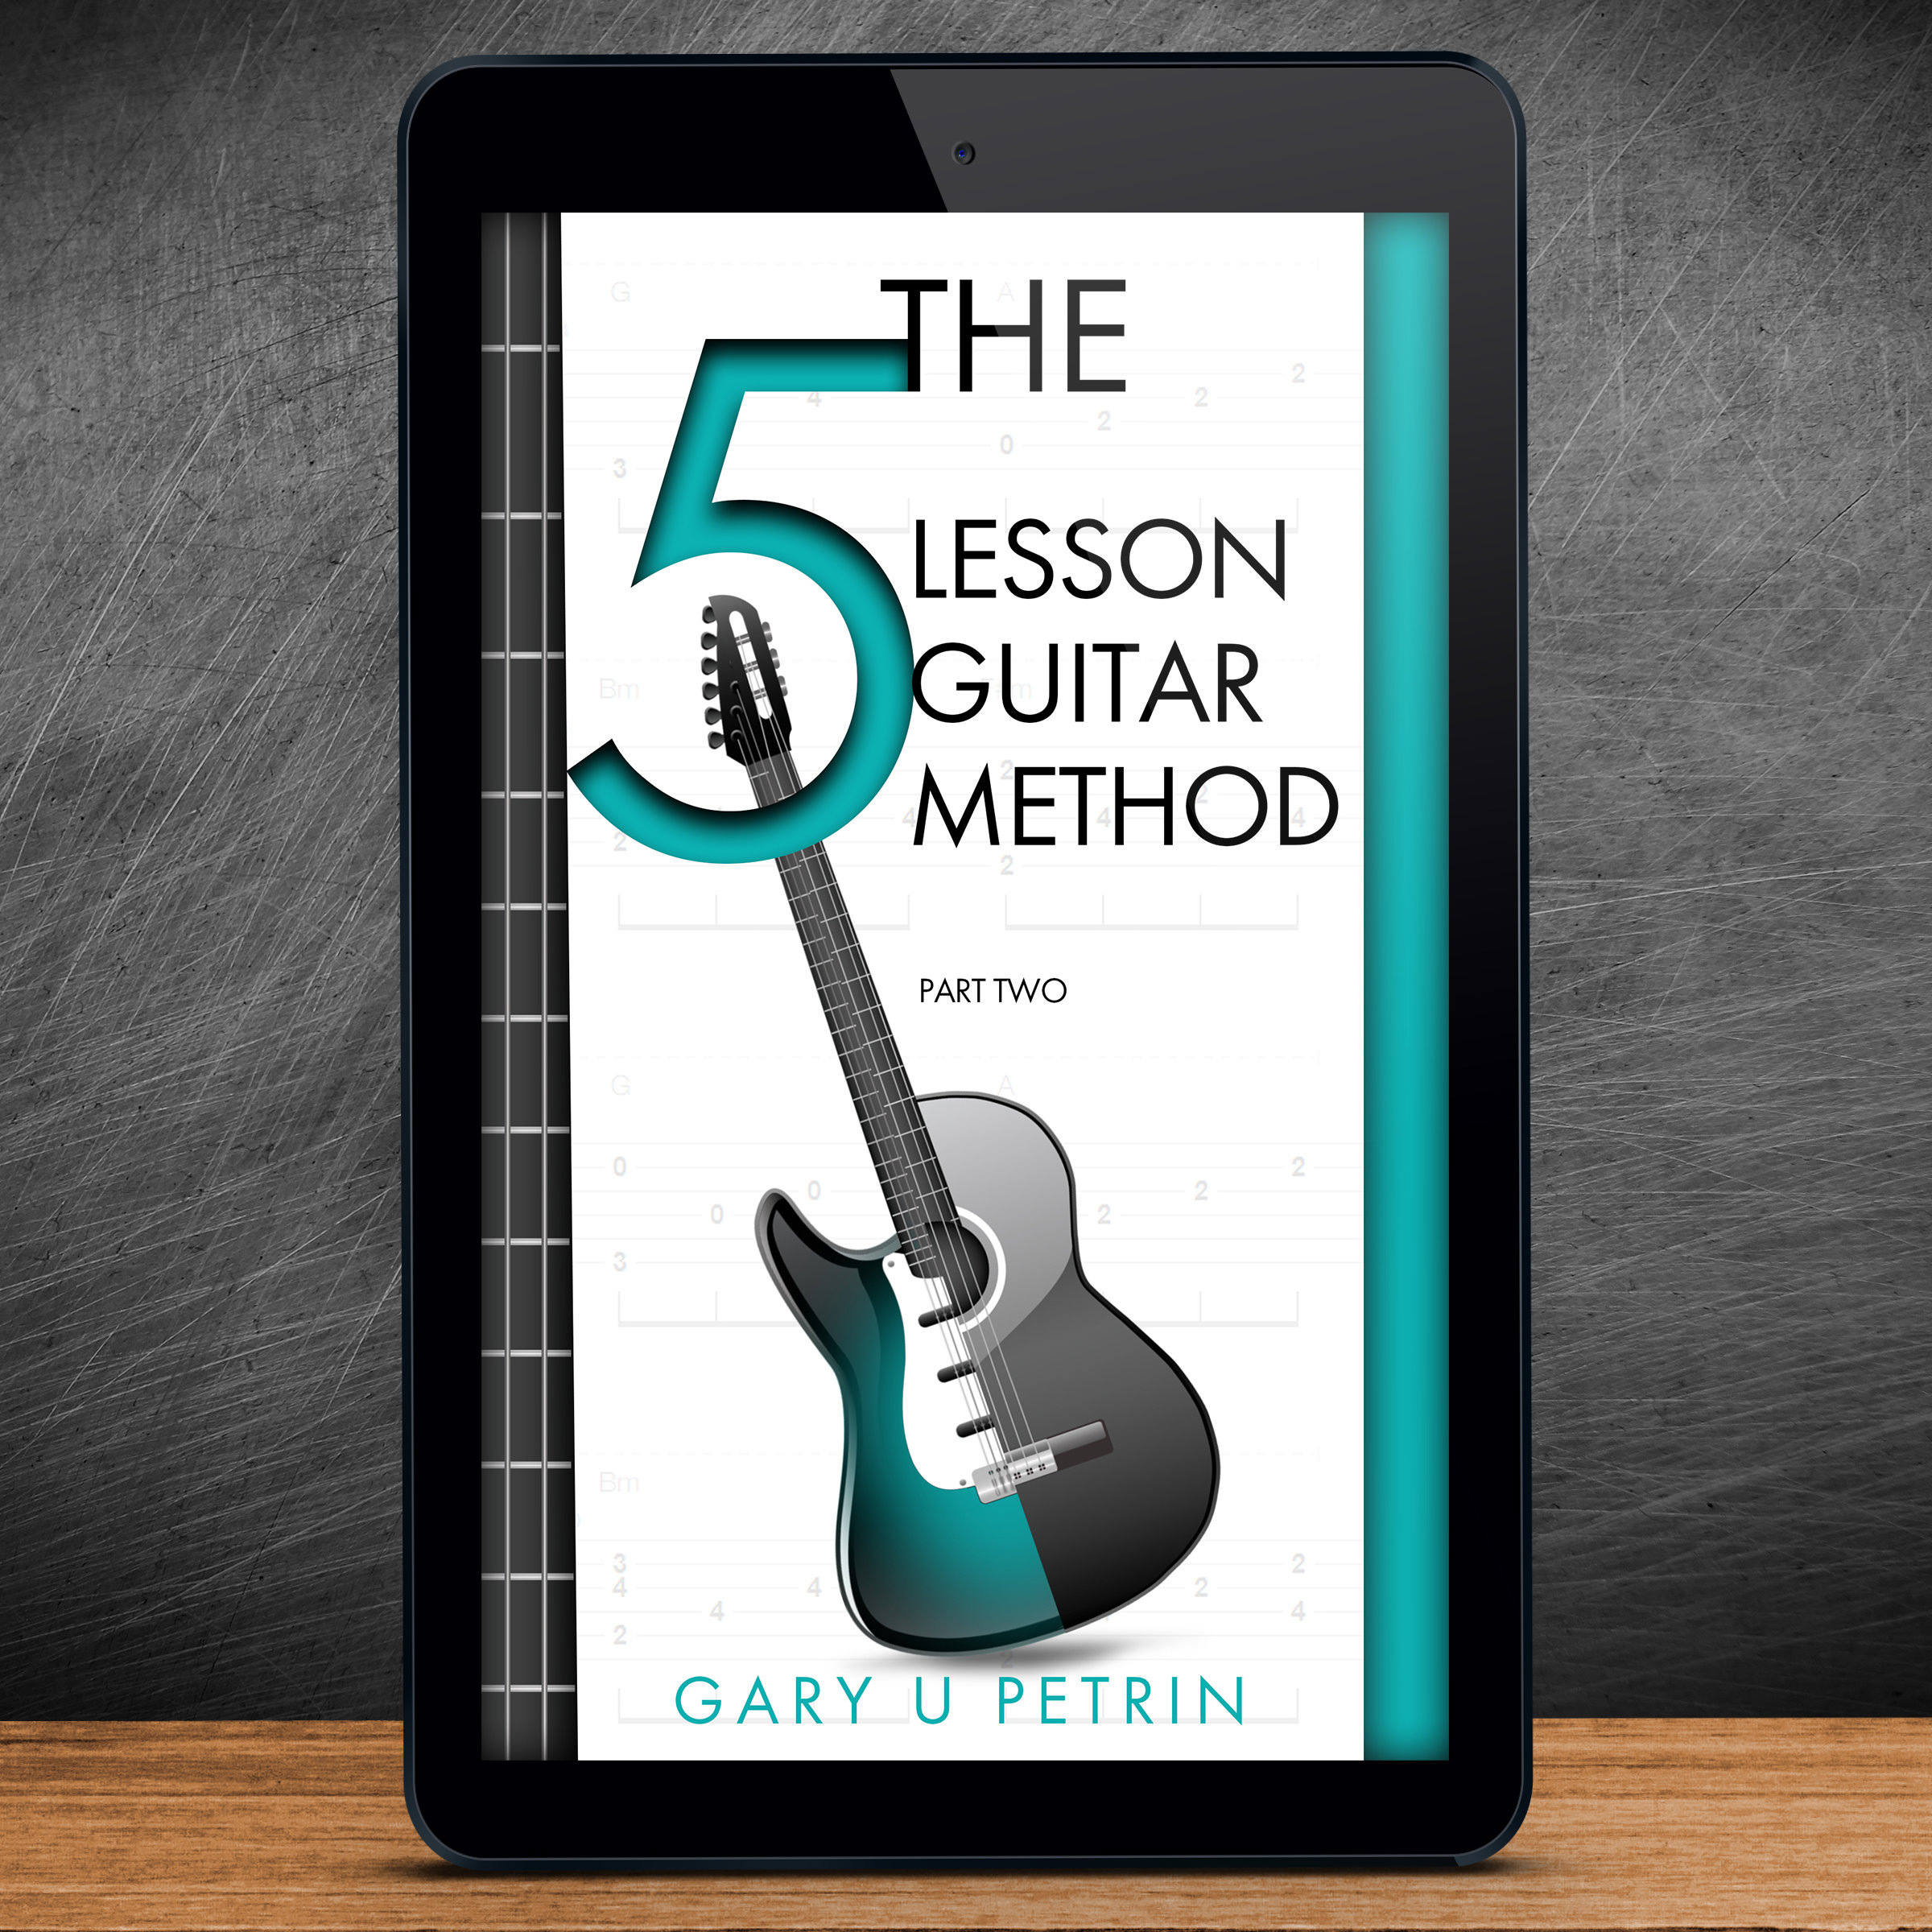 The 5 Lesson Guitar Method - Part Two